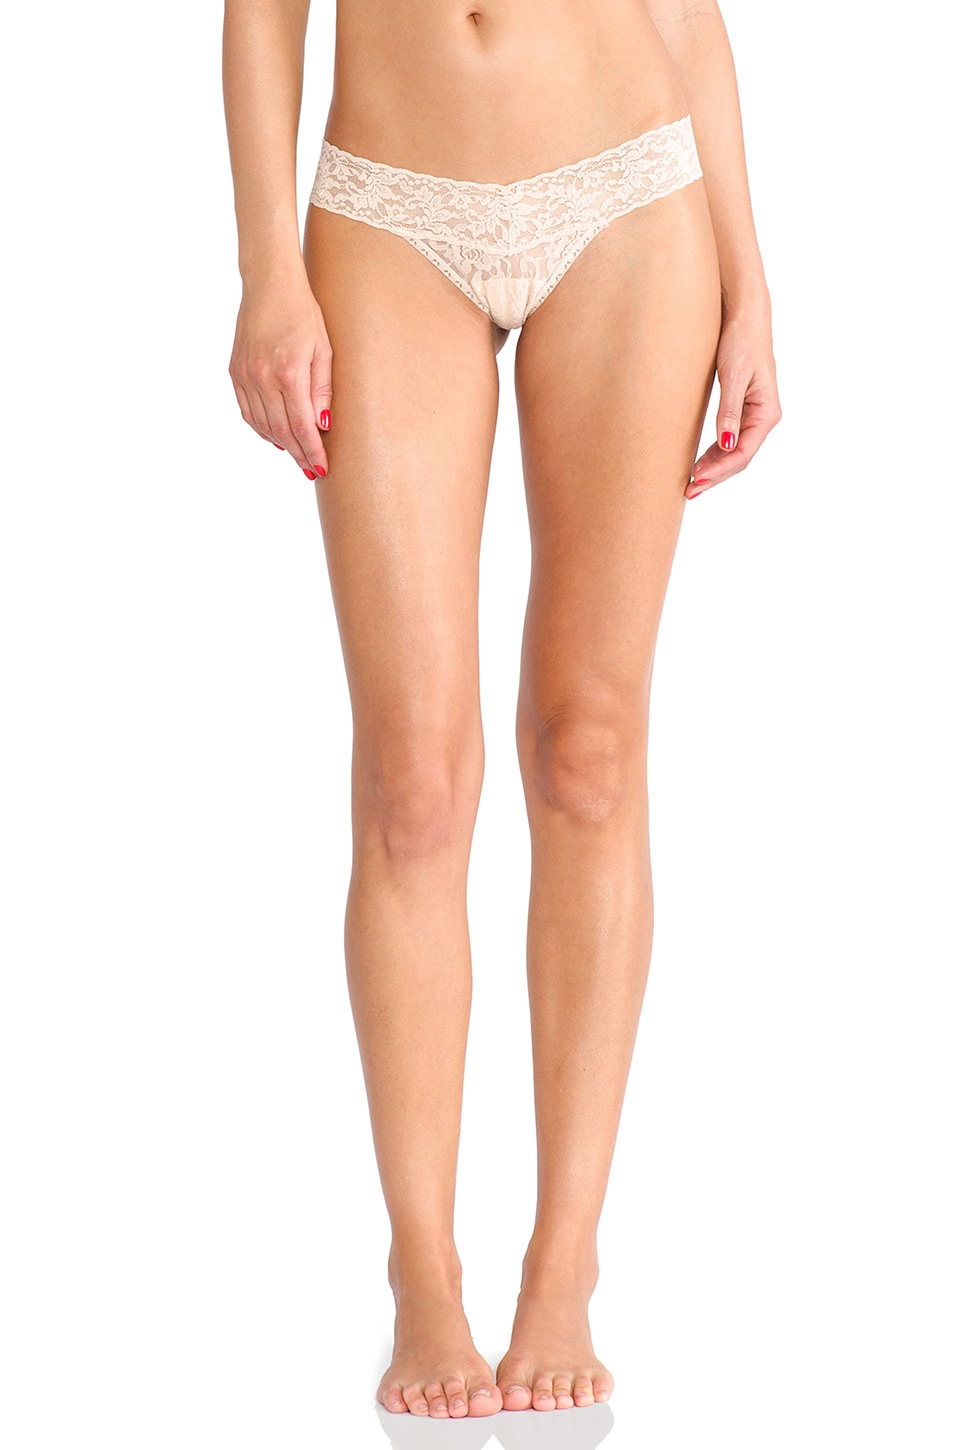 Hanky Panky Signature Lace Petite Low Rise Thong in Chai